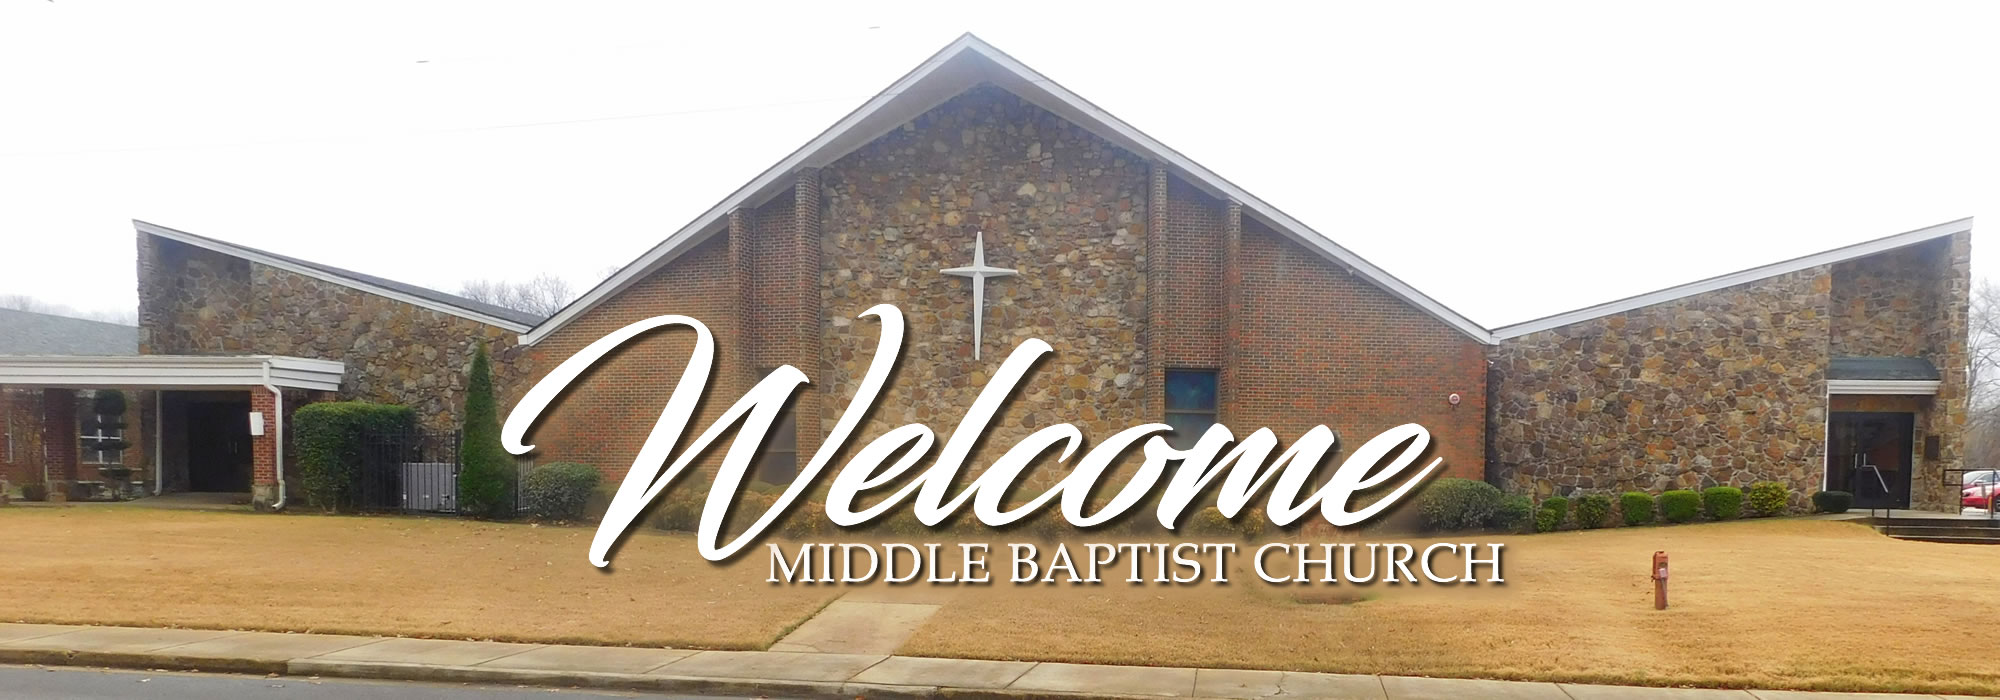 Welcome to Middle Baptist Church